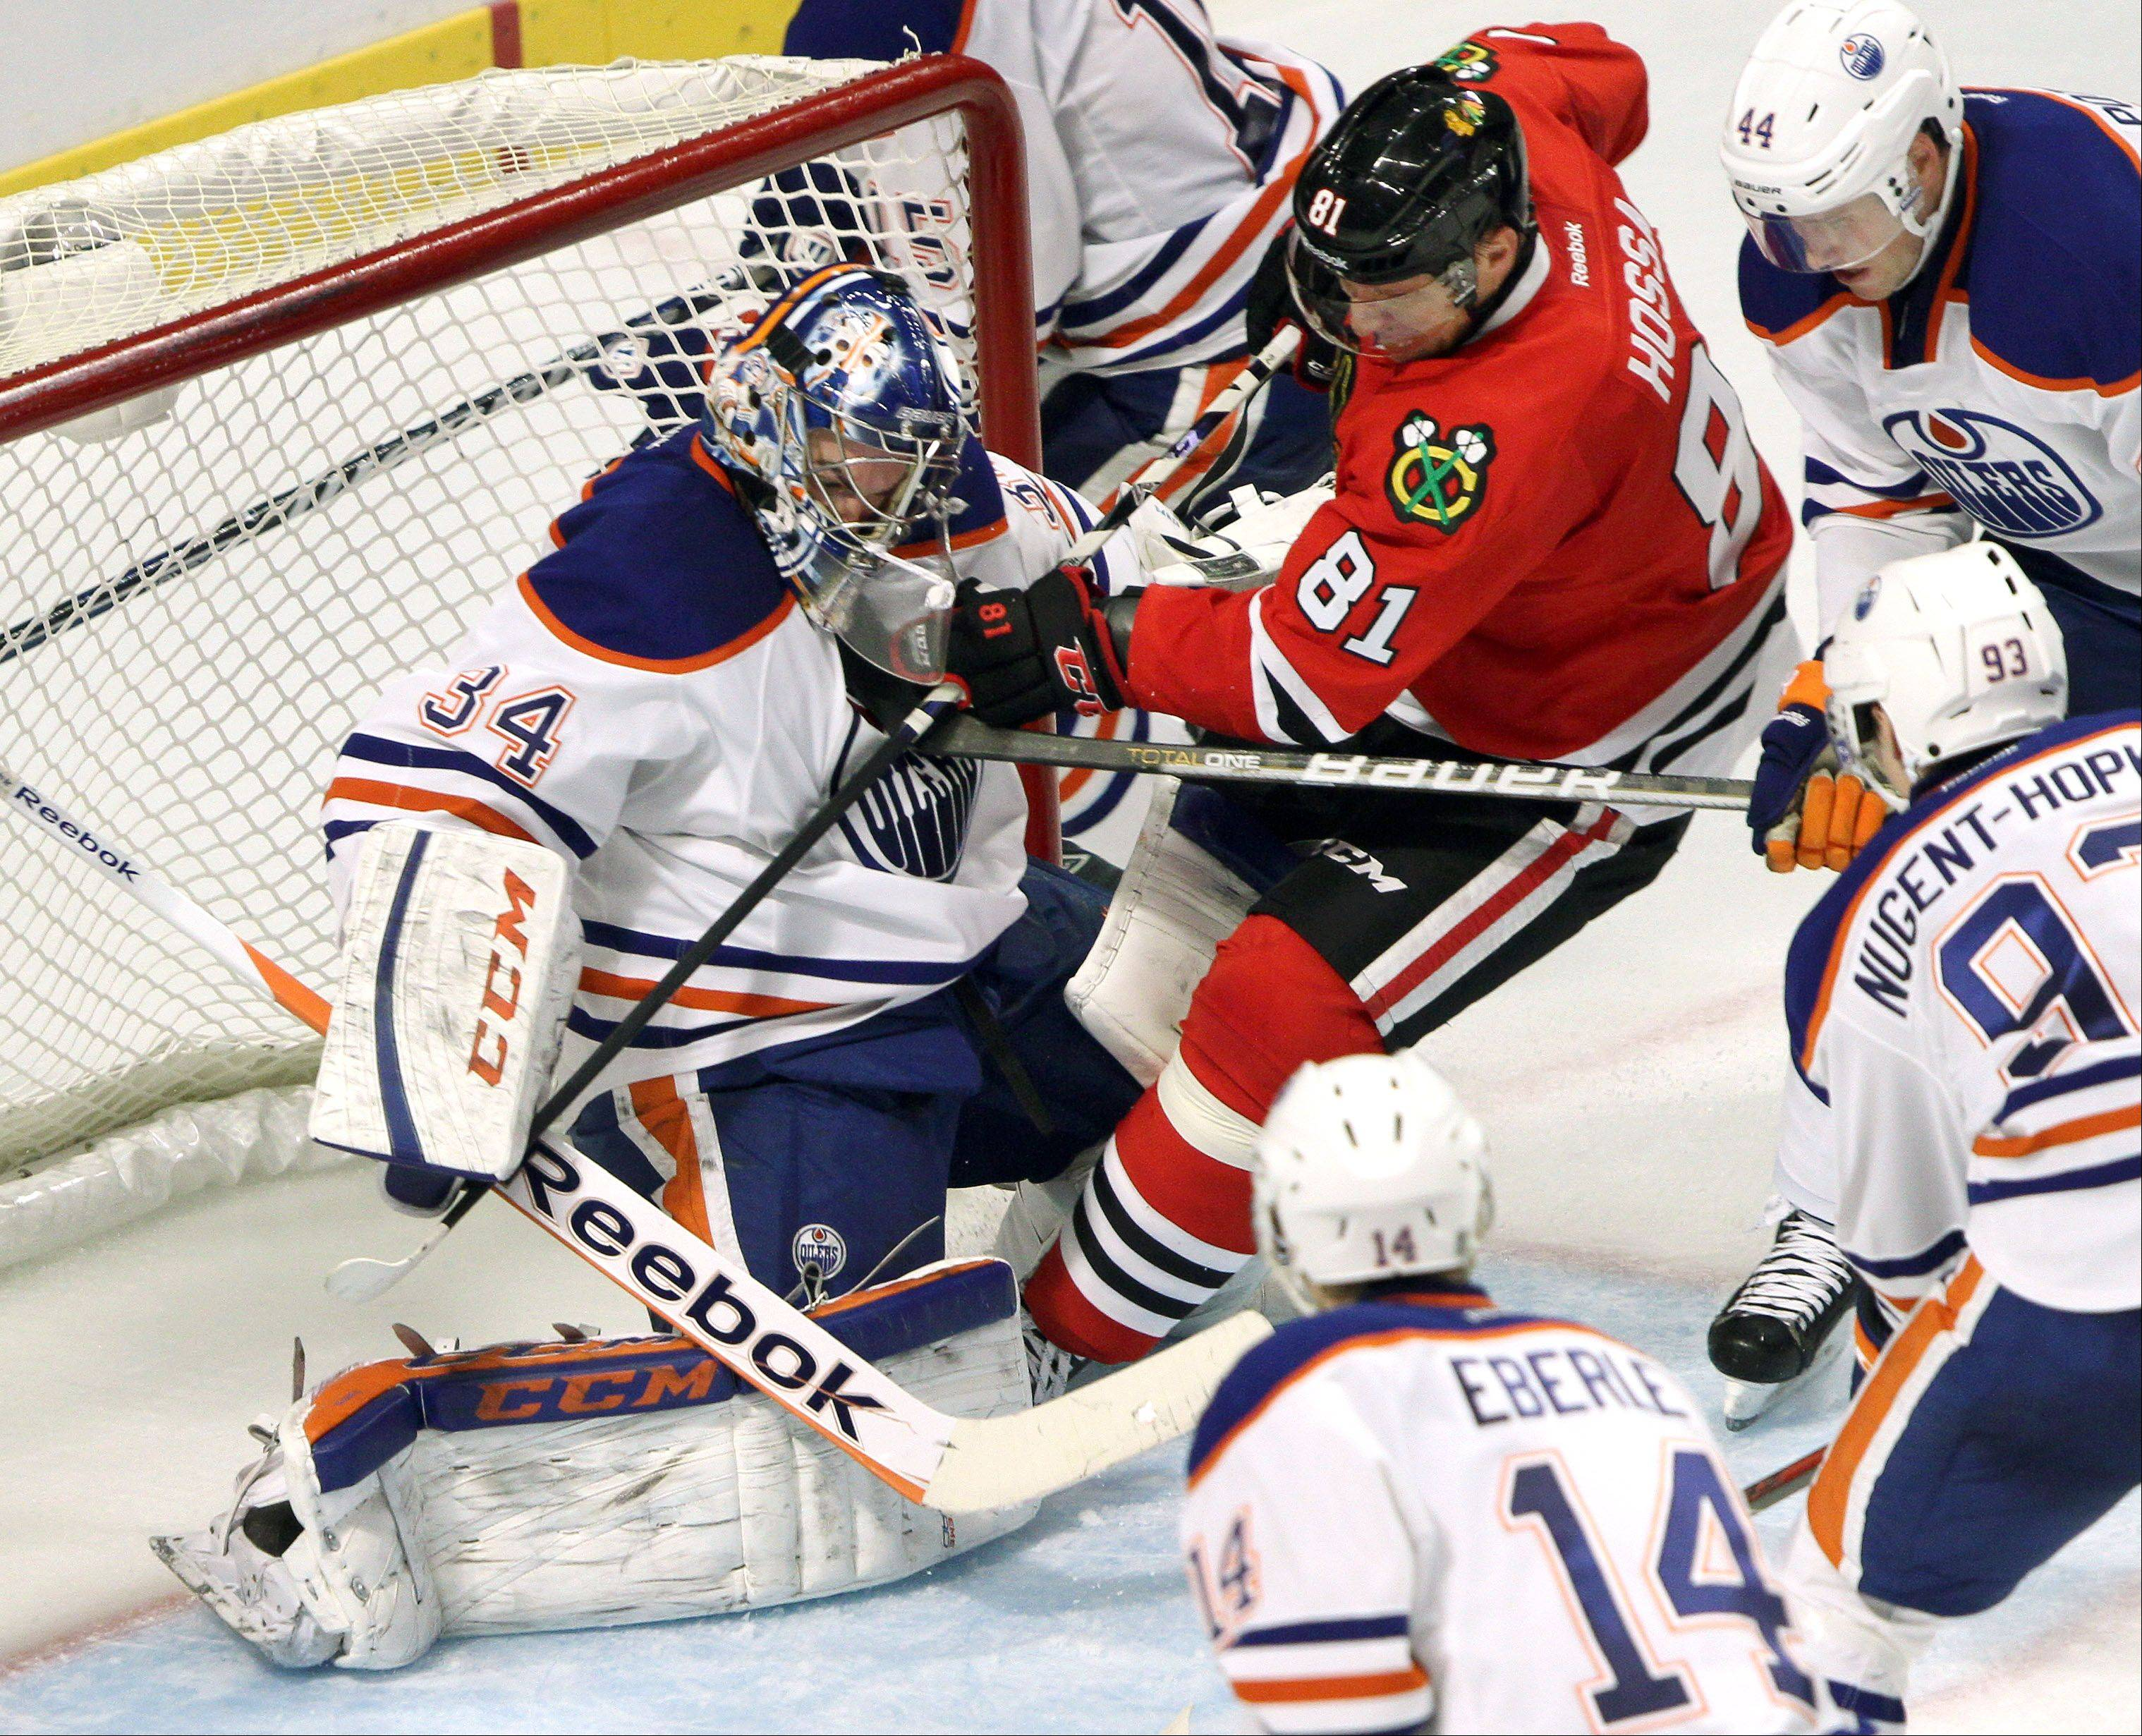 Chicago Blackhawks right wing Marian Hossa collides with Edmonton Oilers goalie Yann Danis during their game Sunday night at the United Center in Chicago.